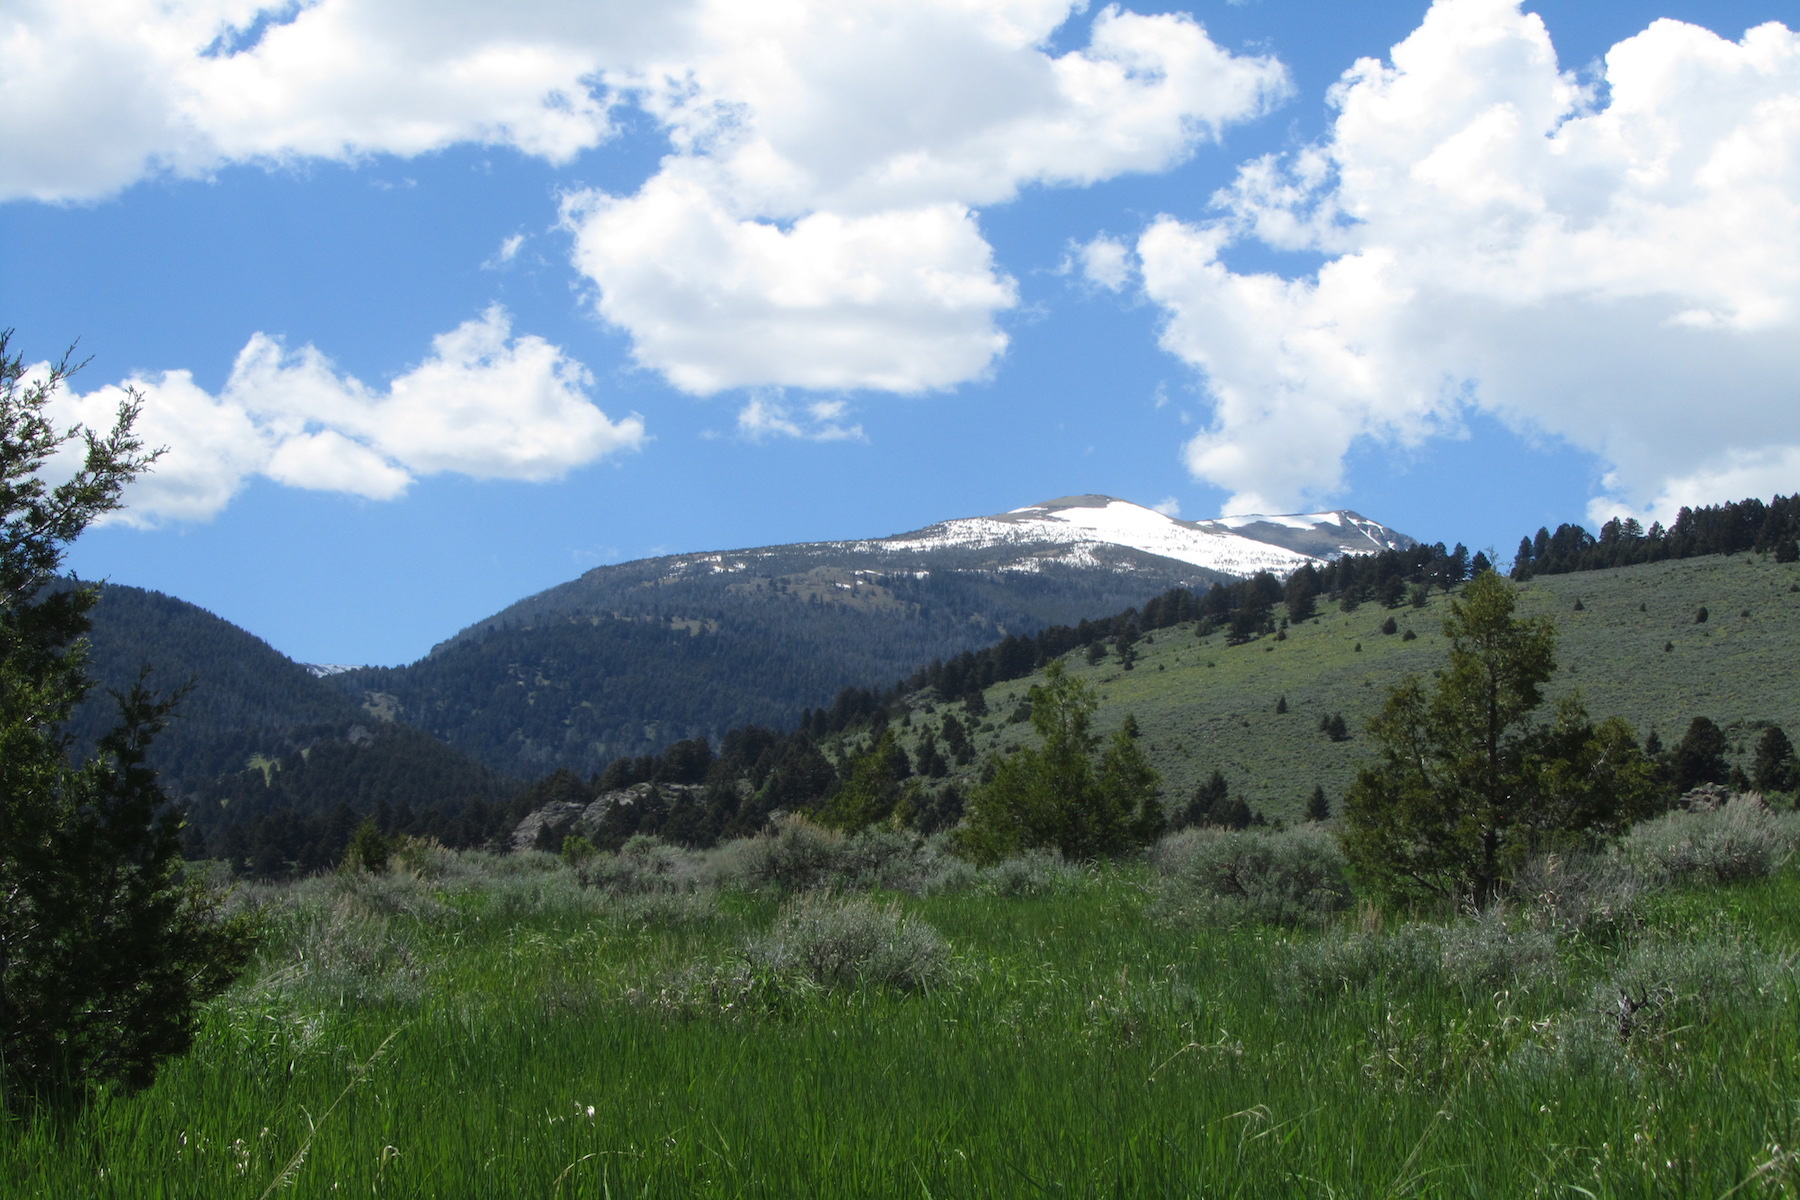 Land for Sale at Elk View Road, Lot 11 McAllister, Montana, 59740 United States